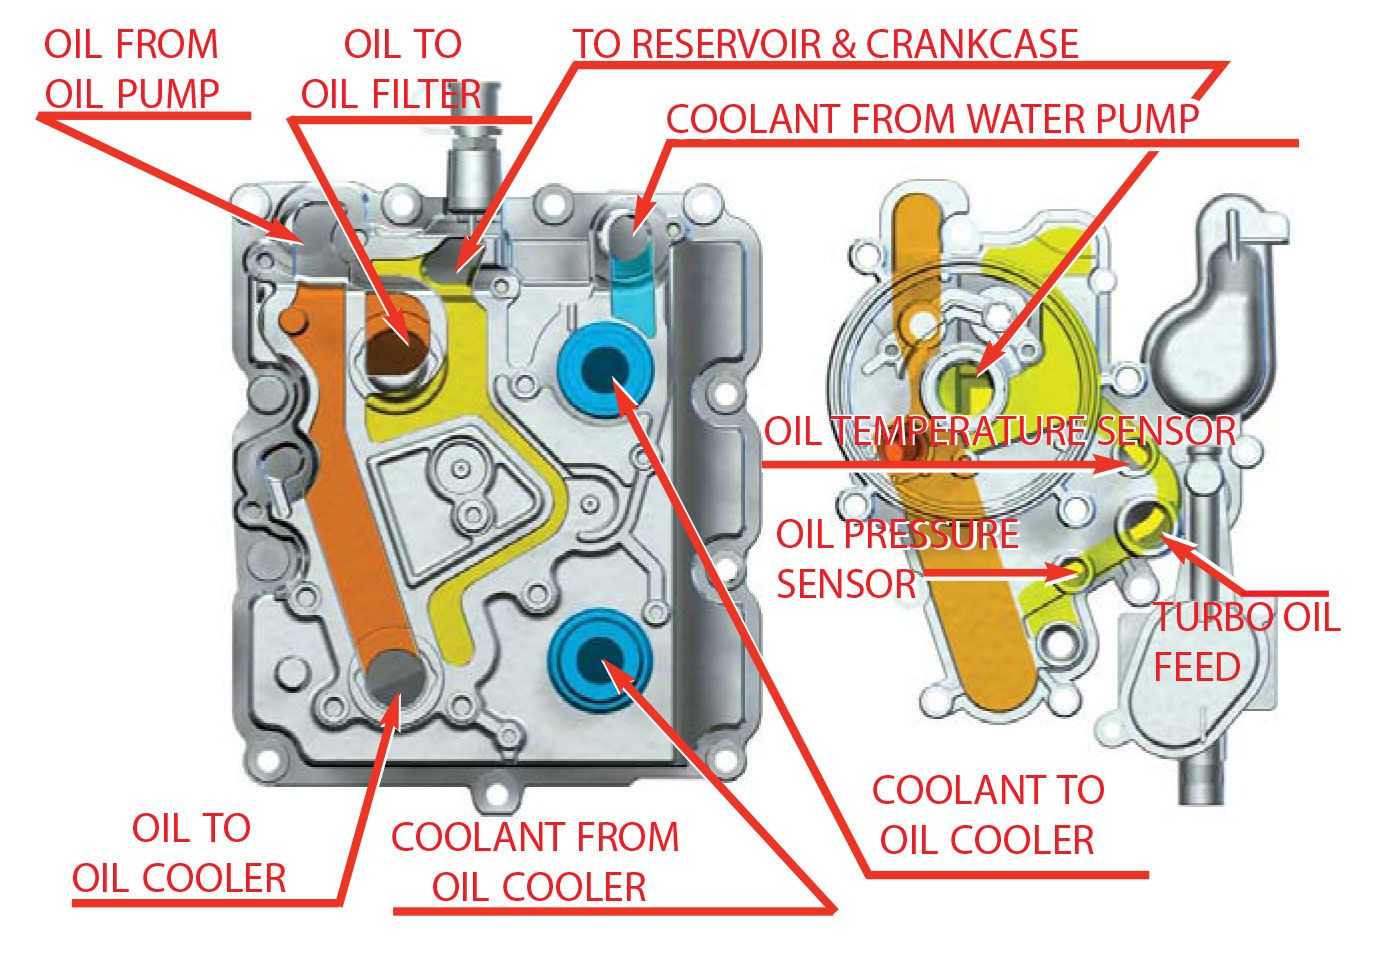 Vw Engine Coolant Parts Diagram likewise 2000 Beetle Wiring Diagram further 64 SUSPEN Power Steering Pump and Reservoir Replacement furthermore 64 SUSPEN Power Steering Pump and Reservoir Replacement as well 64 SUSPEN Power Steering Pump and Reservoir Replacement. on 64 suspen power steering pump and reservoir replacement